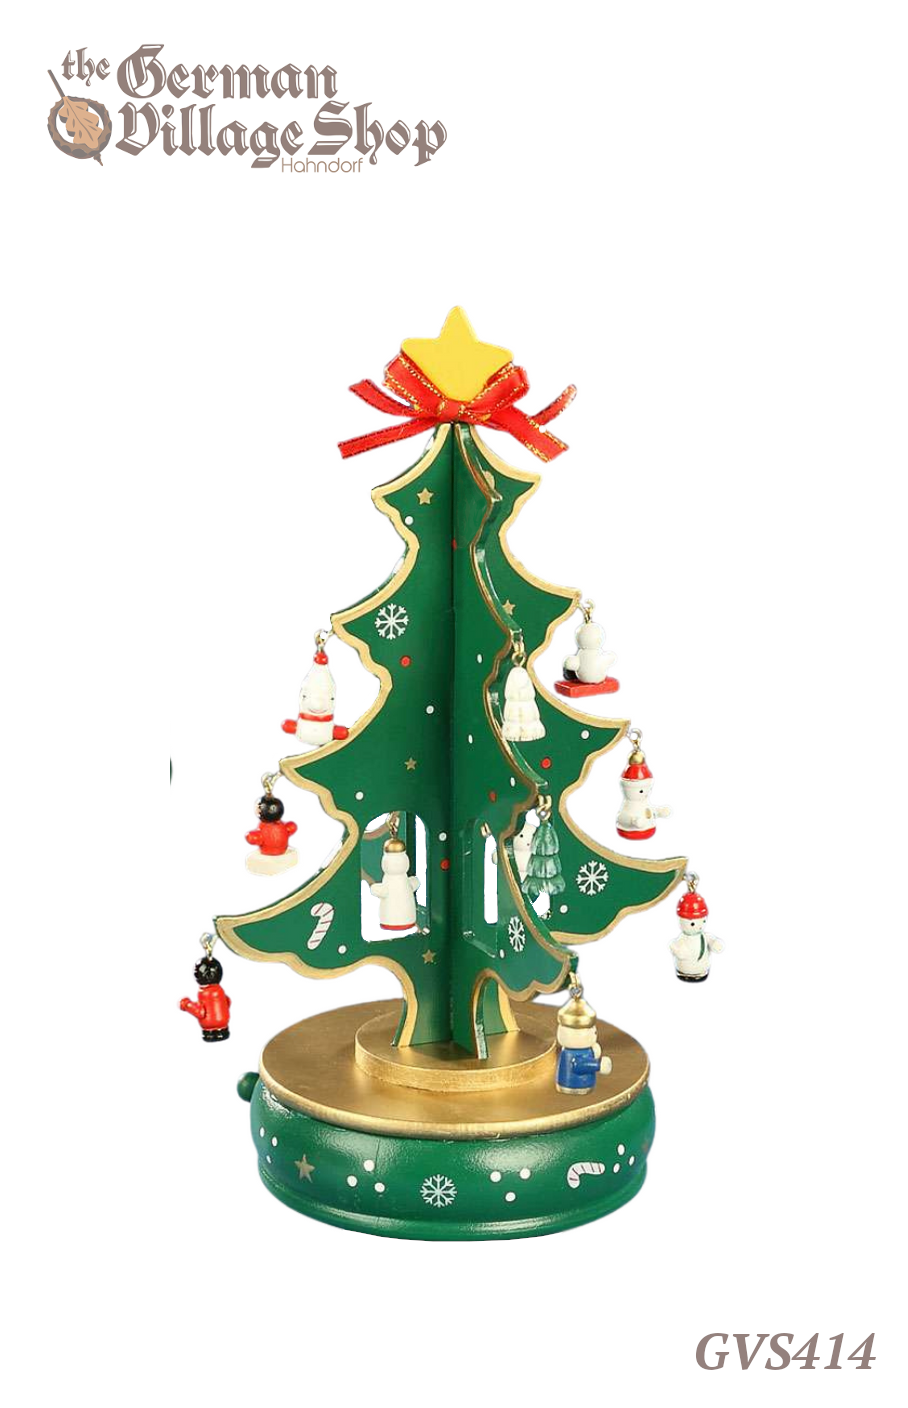 rman wooden Christmas tree, Christmas decorations, Christmas trees with ornaments